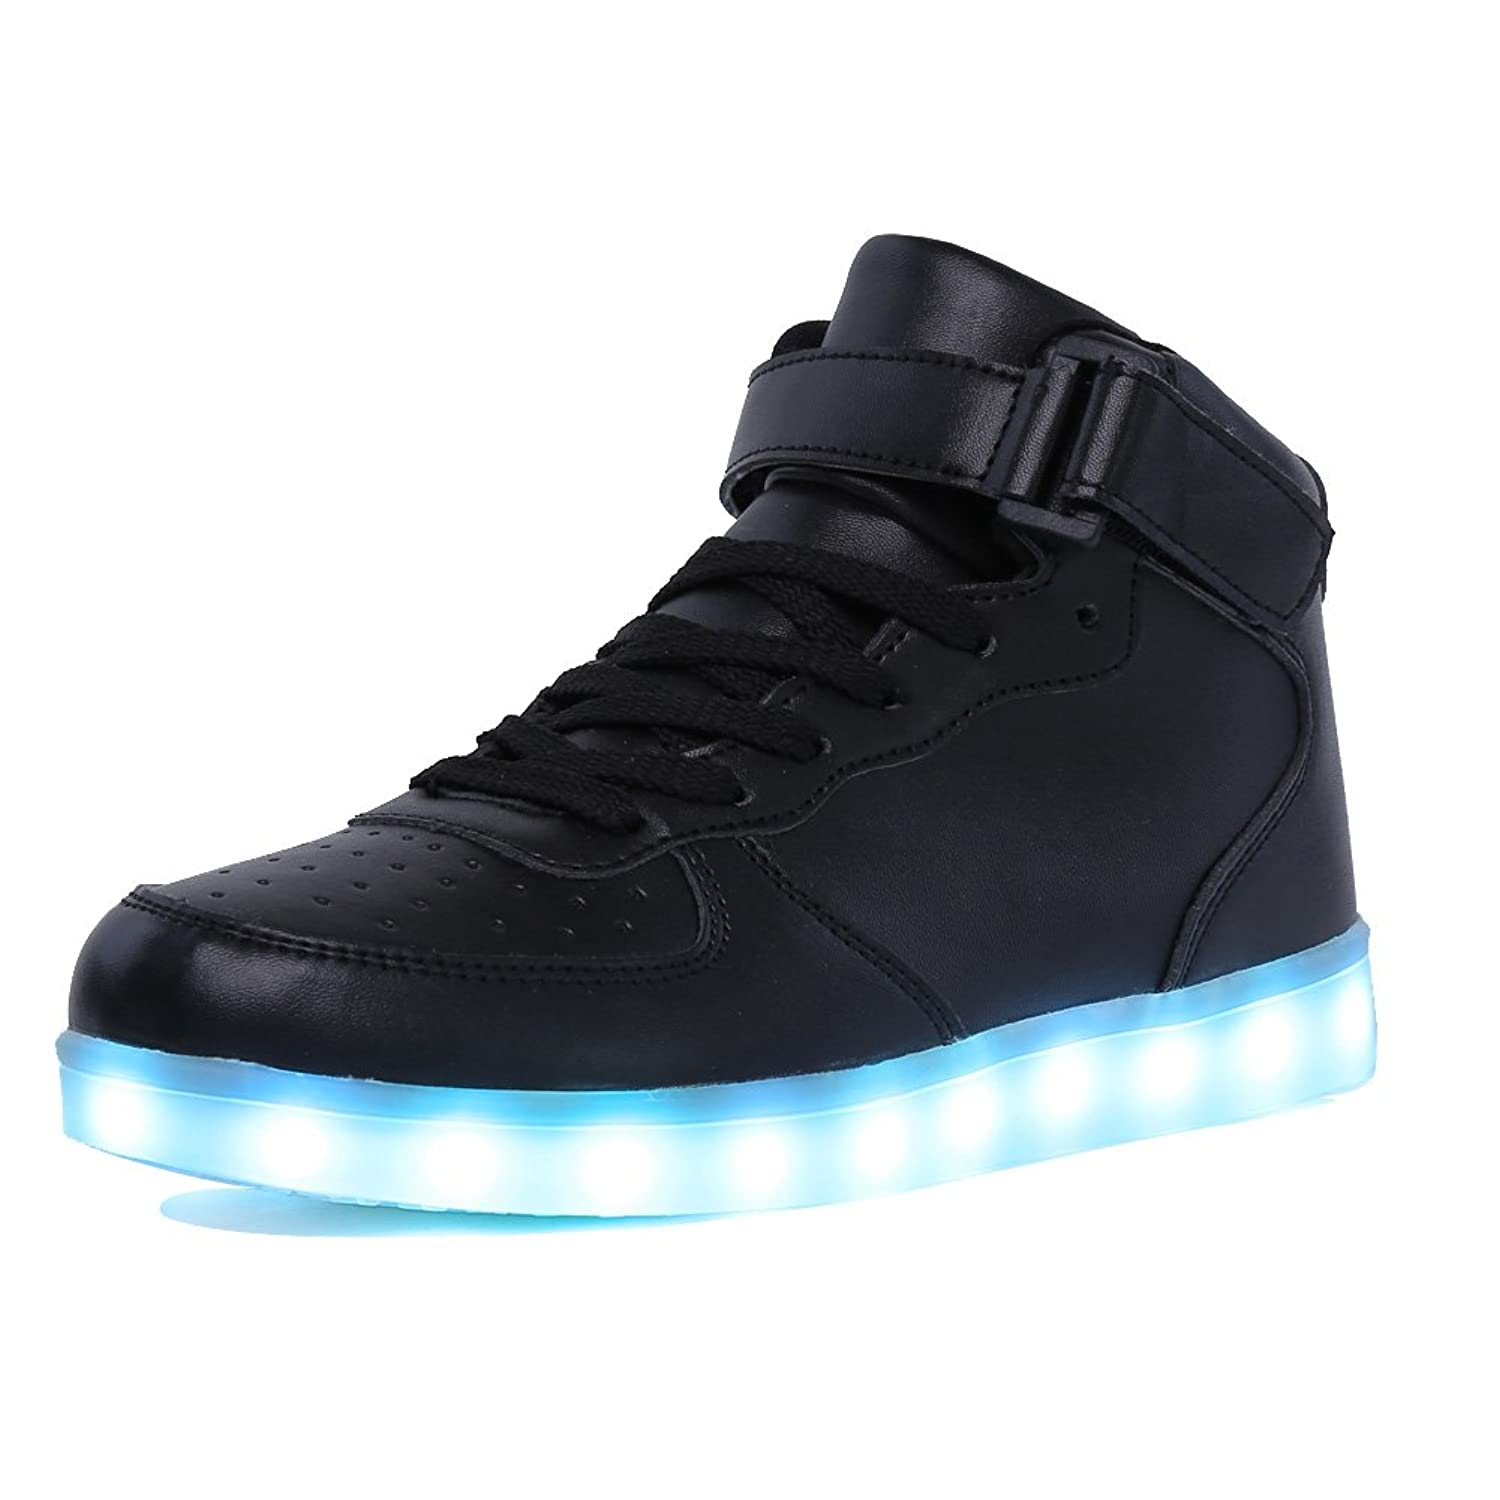 Top Led Light Up Shoes 11 Colors Flashing Rechargeable